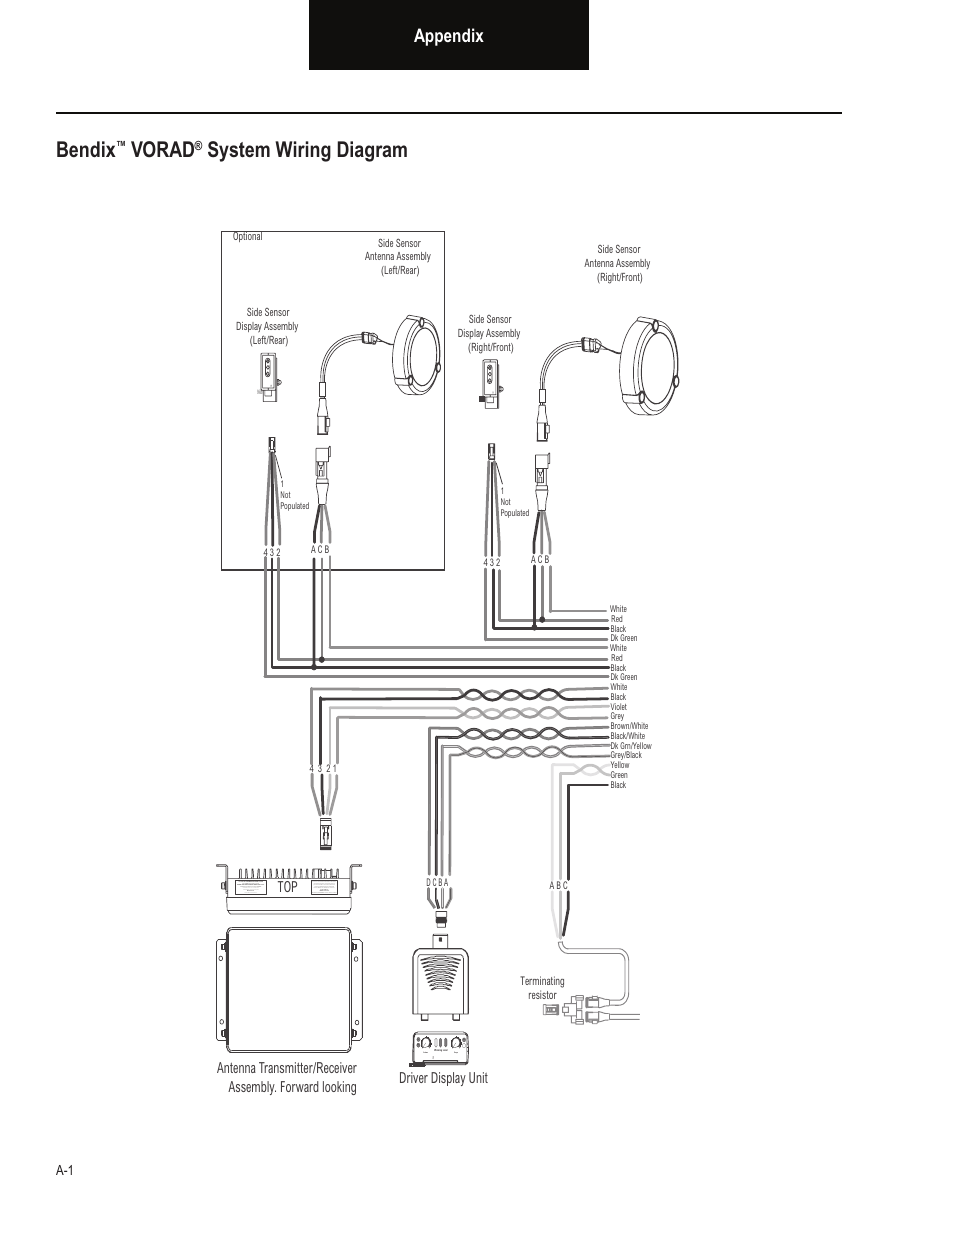 bendix vorad system wiring diagram bendix commercial. Black Bedroom Furniture Sets. Home Design Ideas